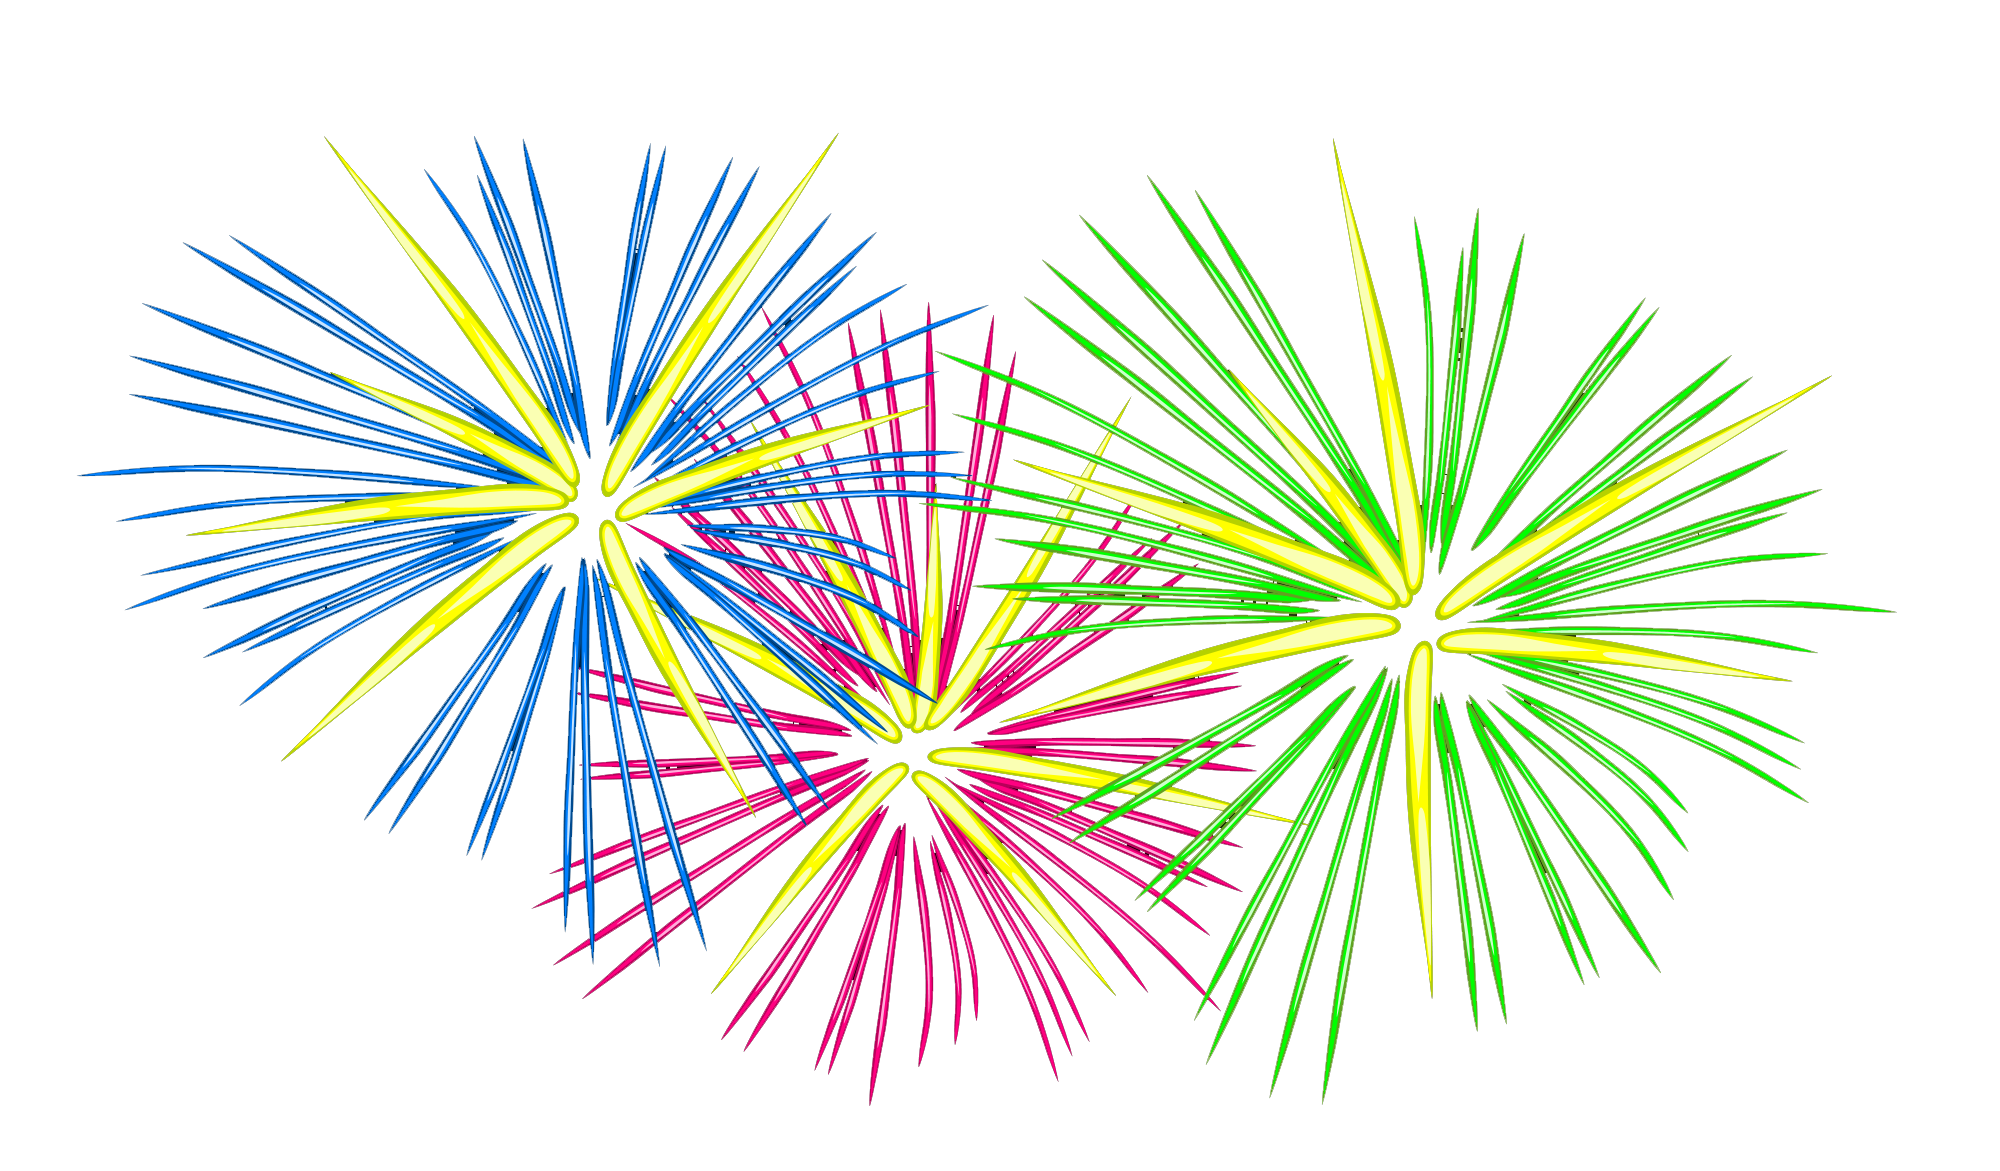 Top firework patents article. Firecracker vector file graphic royalty free